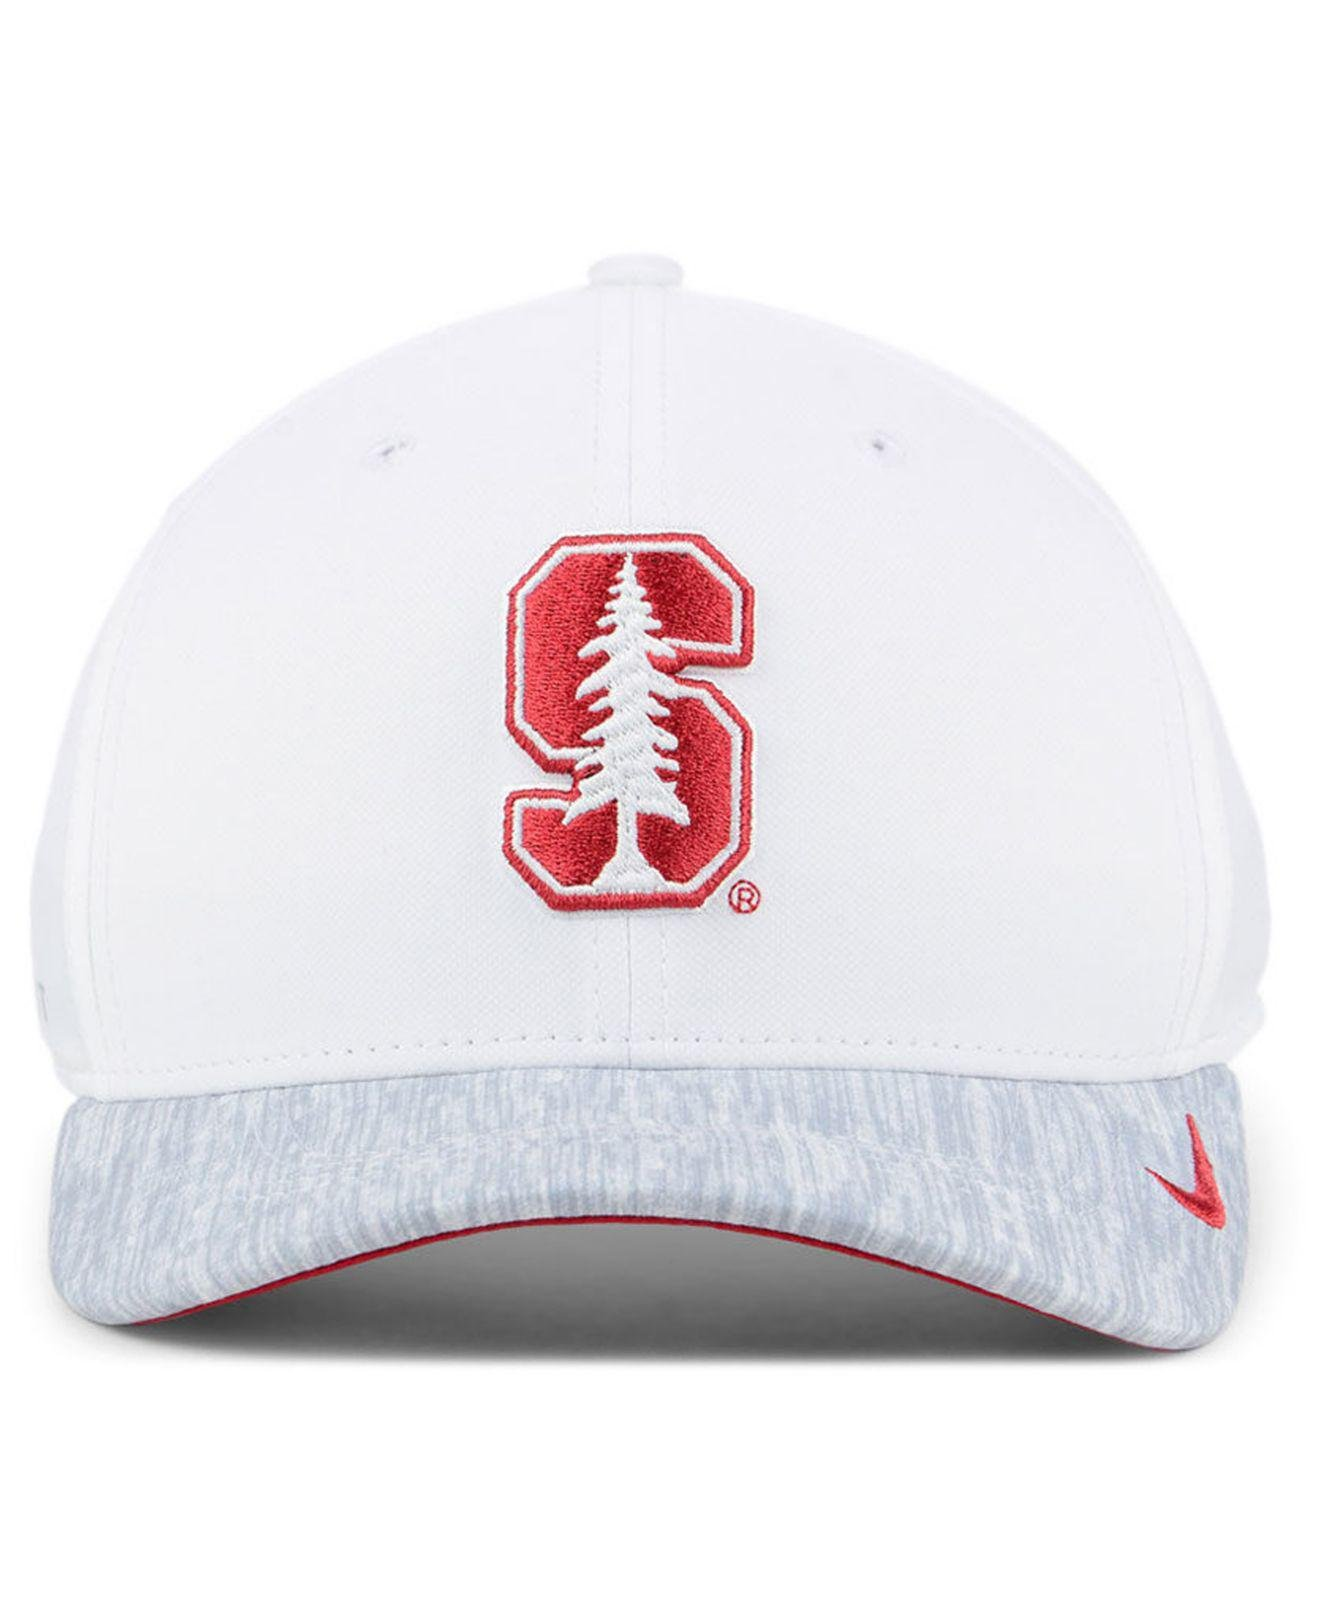 new arrival c3f1c d4a08 ... get lyst nike stanford cardinal arobill swoosh flex cap in white for  men 679ec 92999